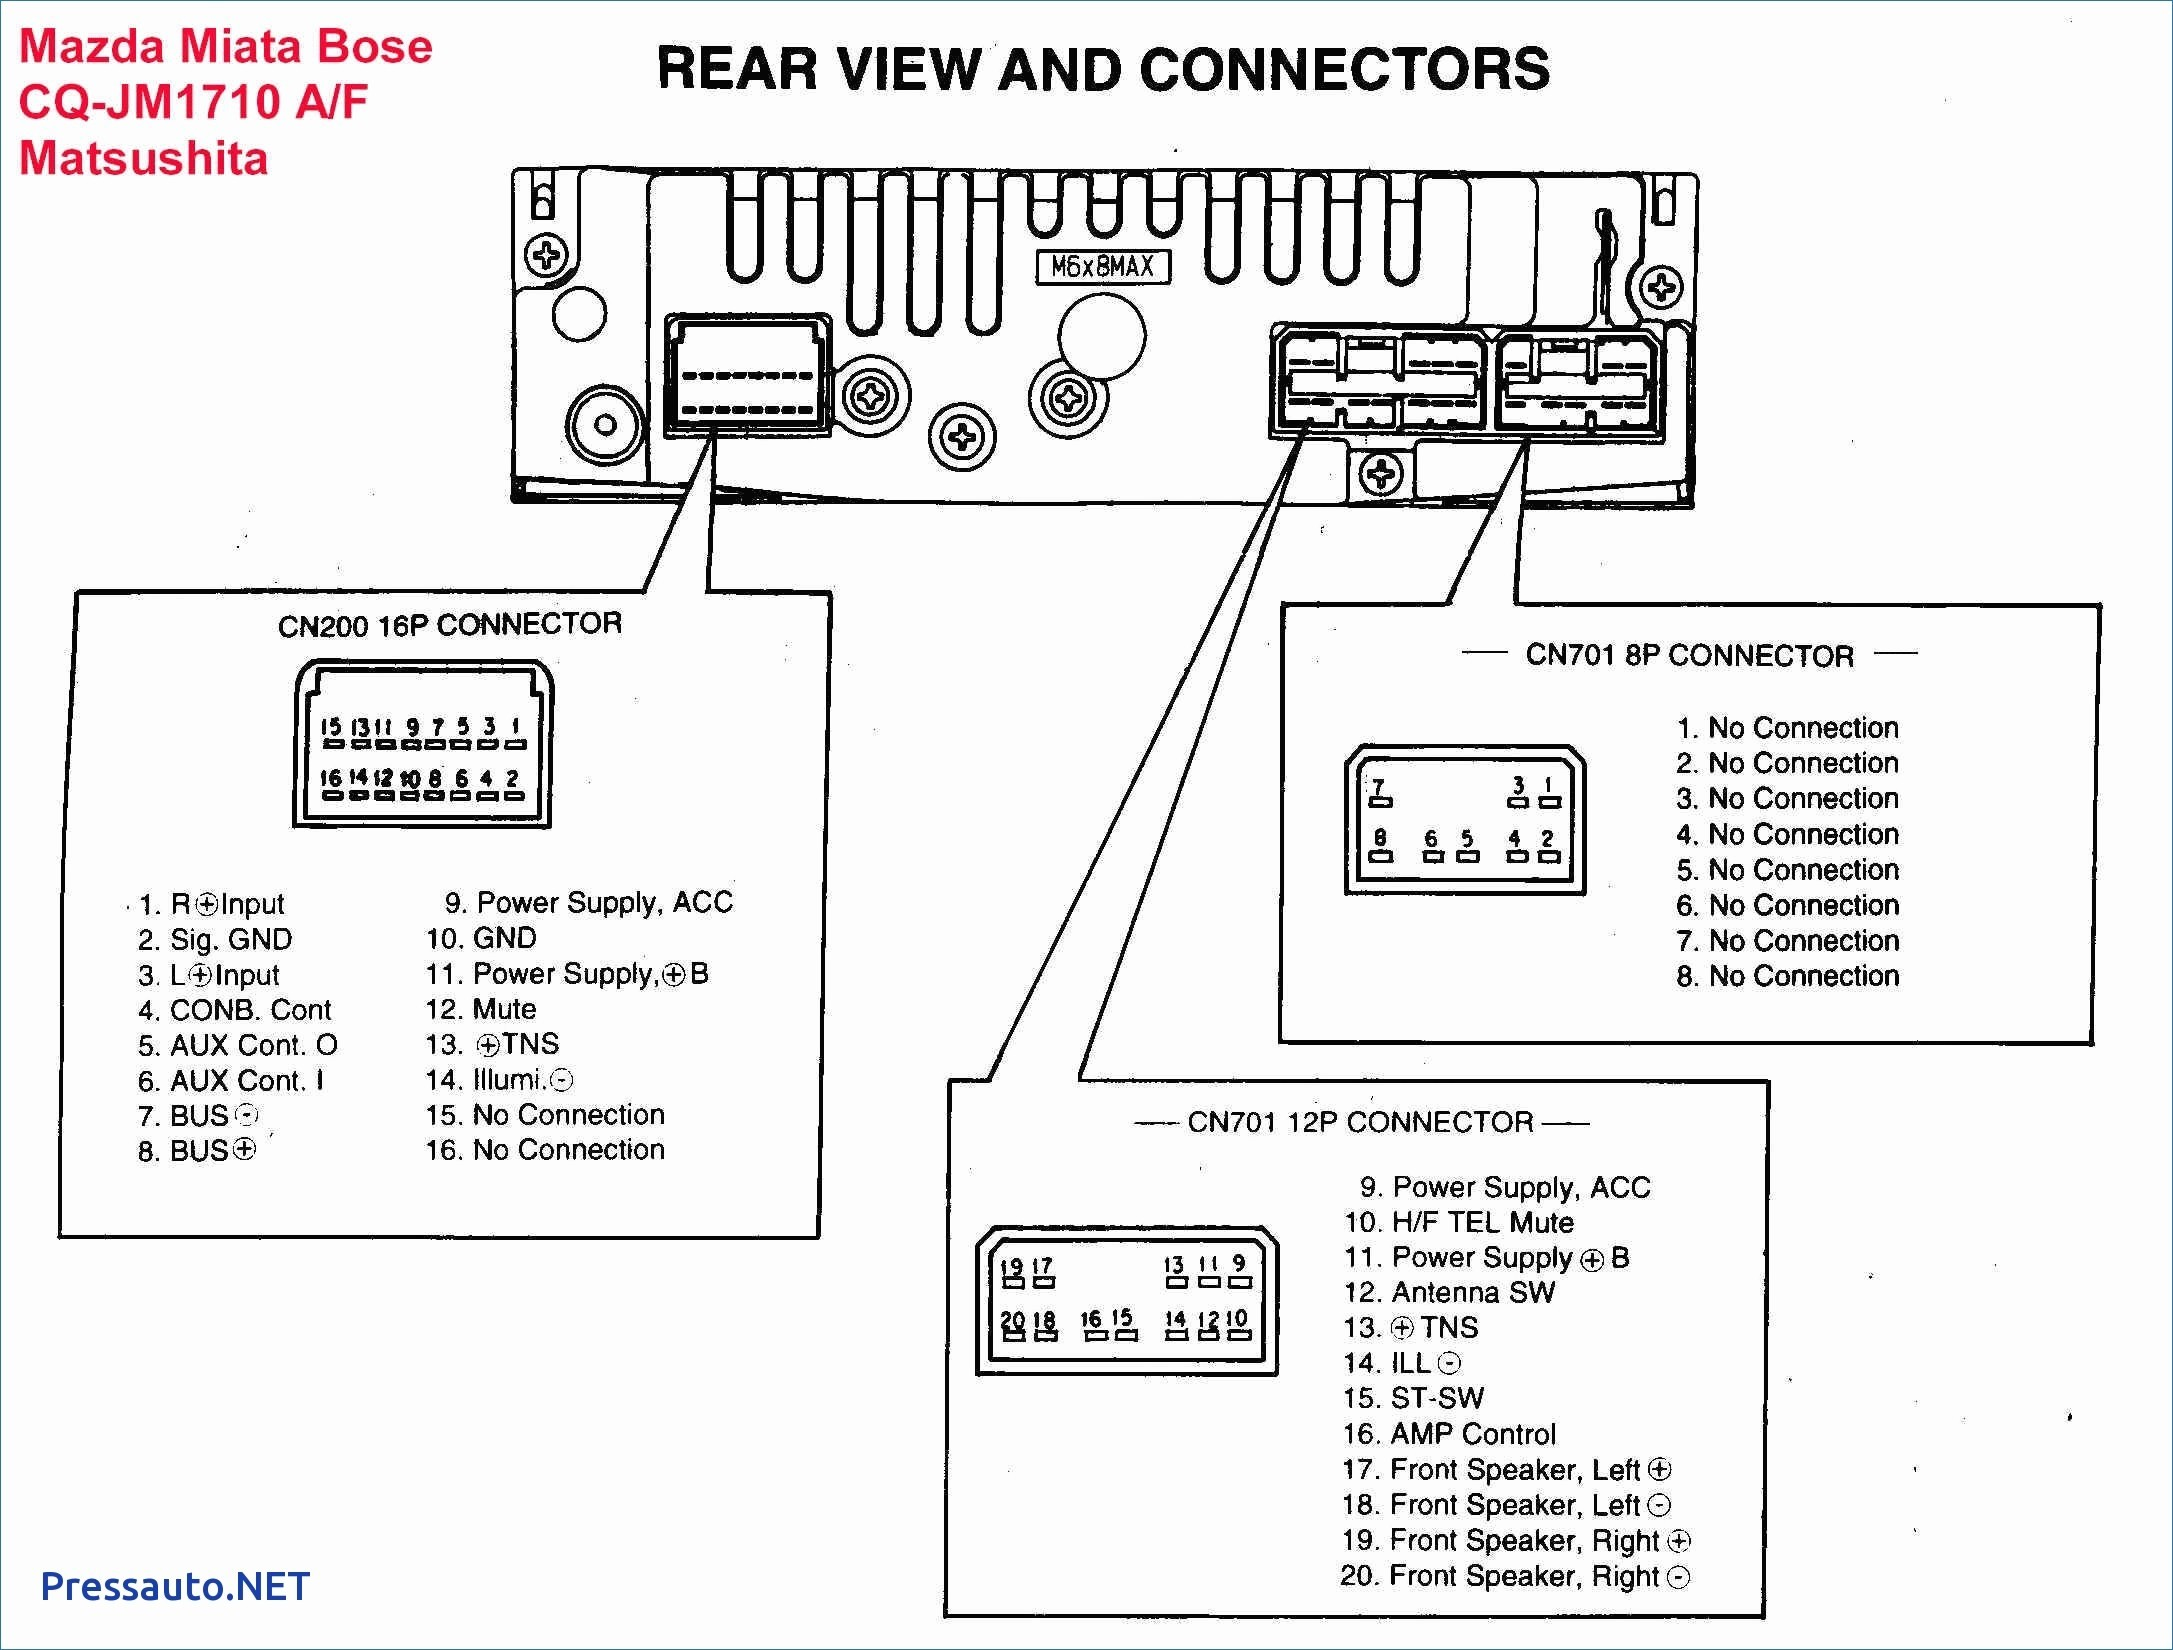 1999 infiniti i30 engine diagram wiring diagram library1999 infiniti i30 wiring diagram 14 7 cryptopotato co \\u2022 1997 infiniti j30 fuel pump relay 1999 infiniti i30 engine diagram